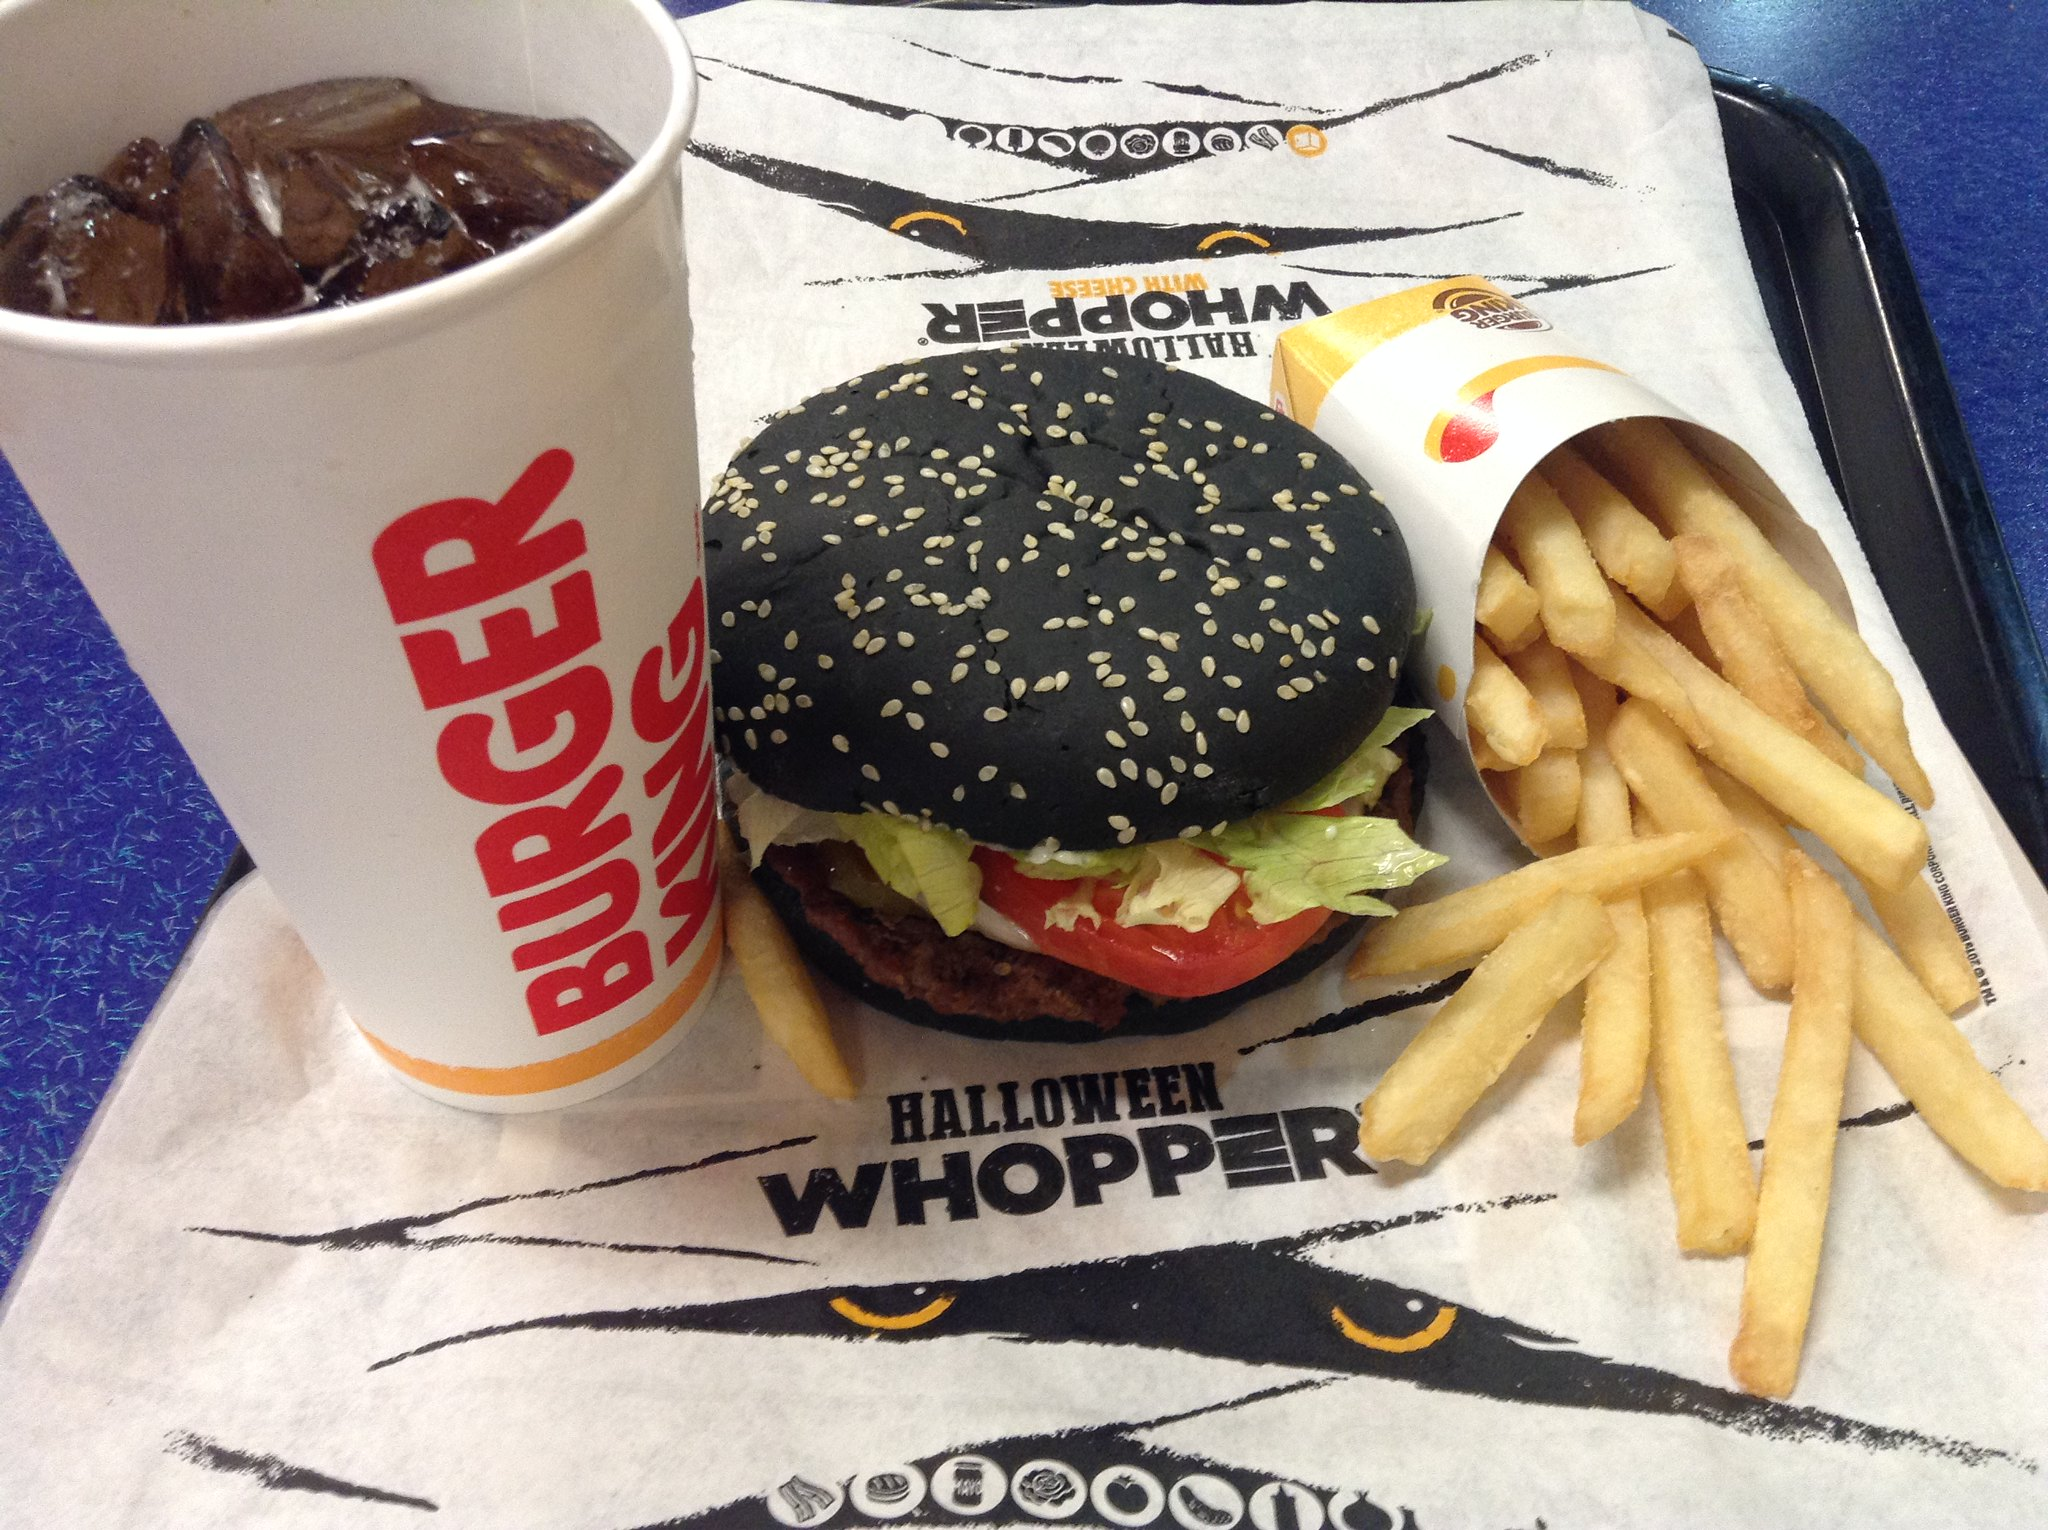 Burger King Halloween Whopper with soda and fries